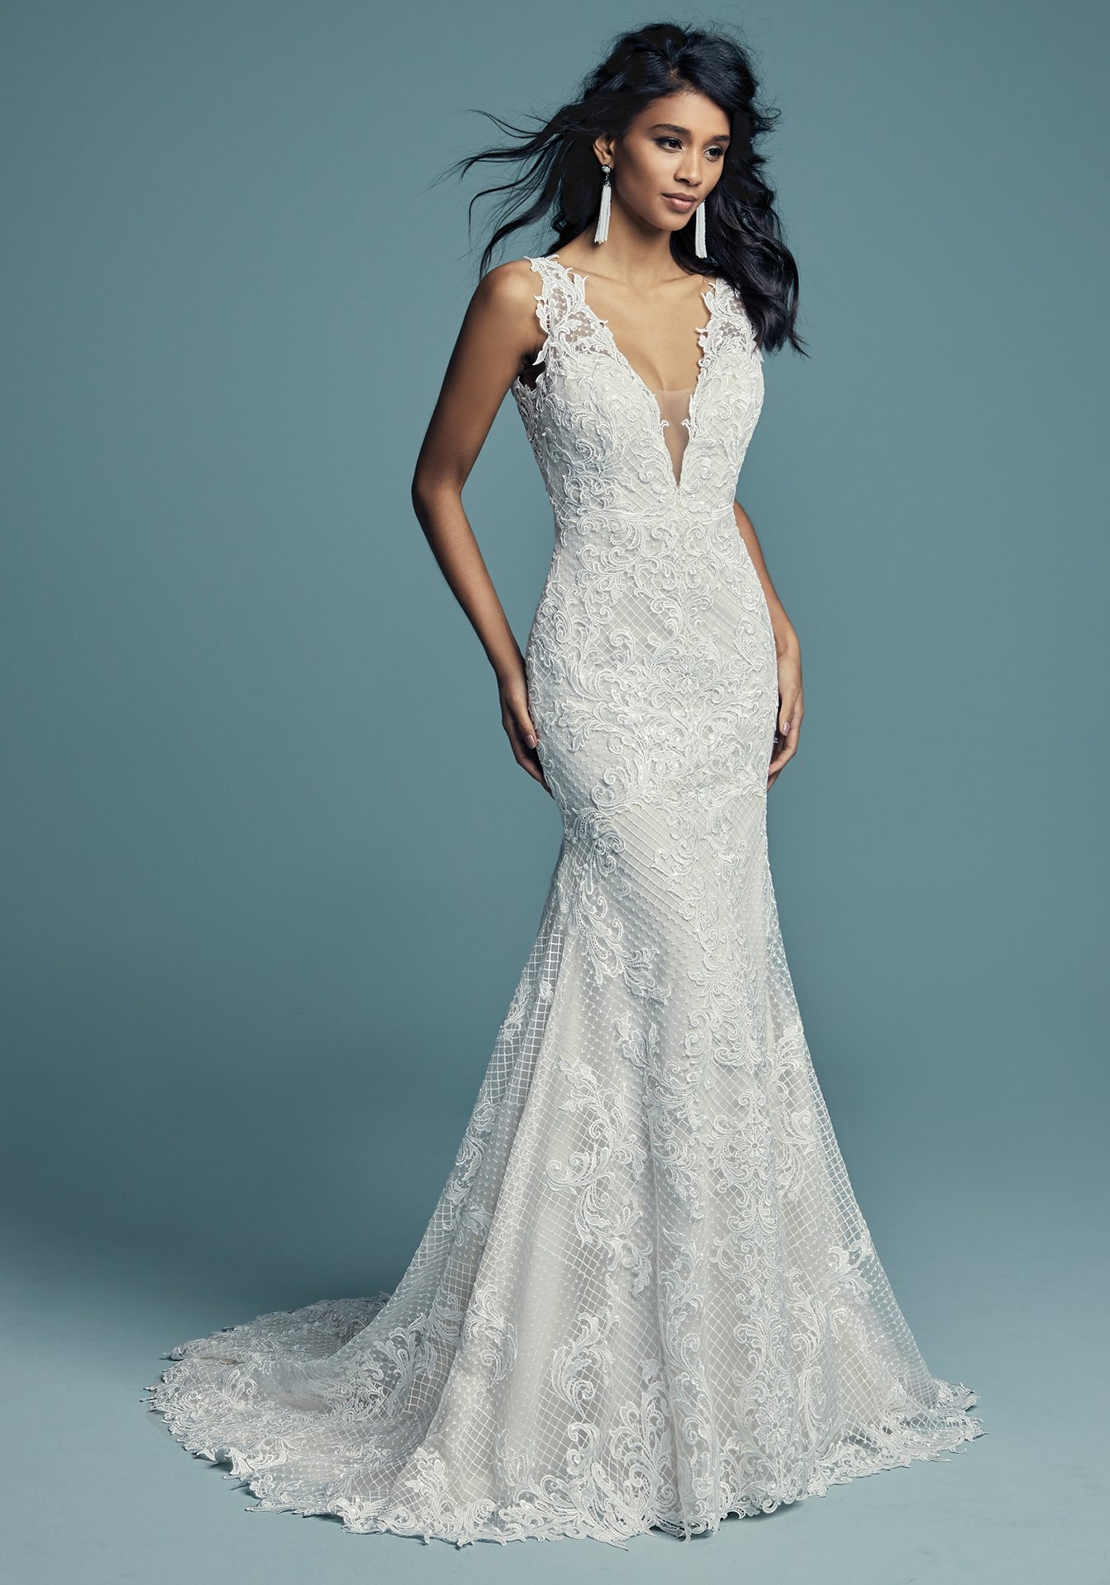 Maggie Sottero Hailey Wedding Dress